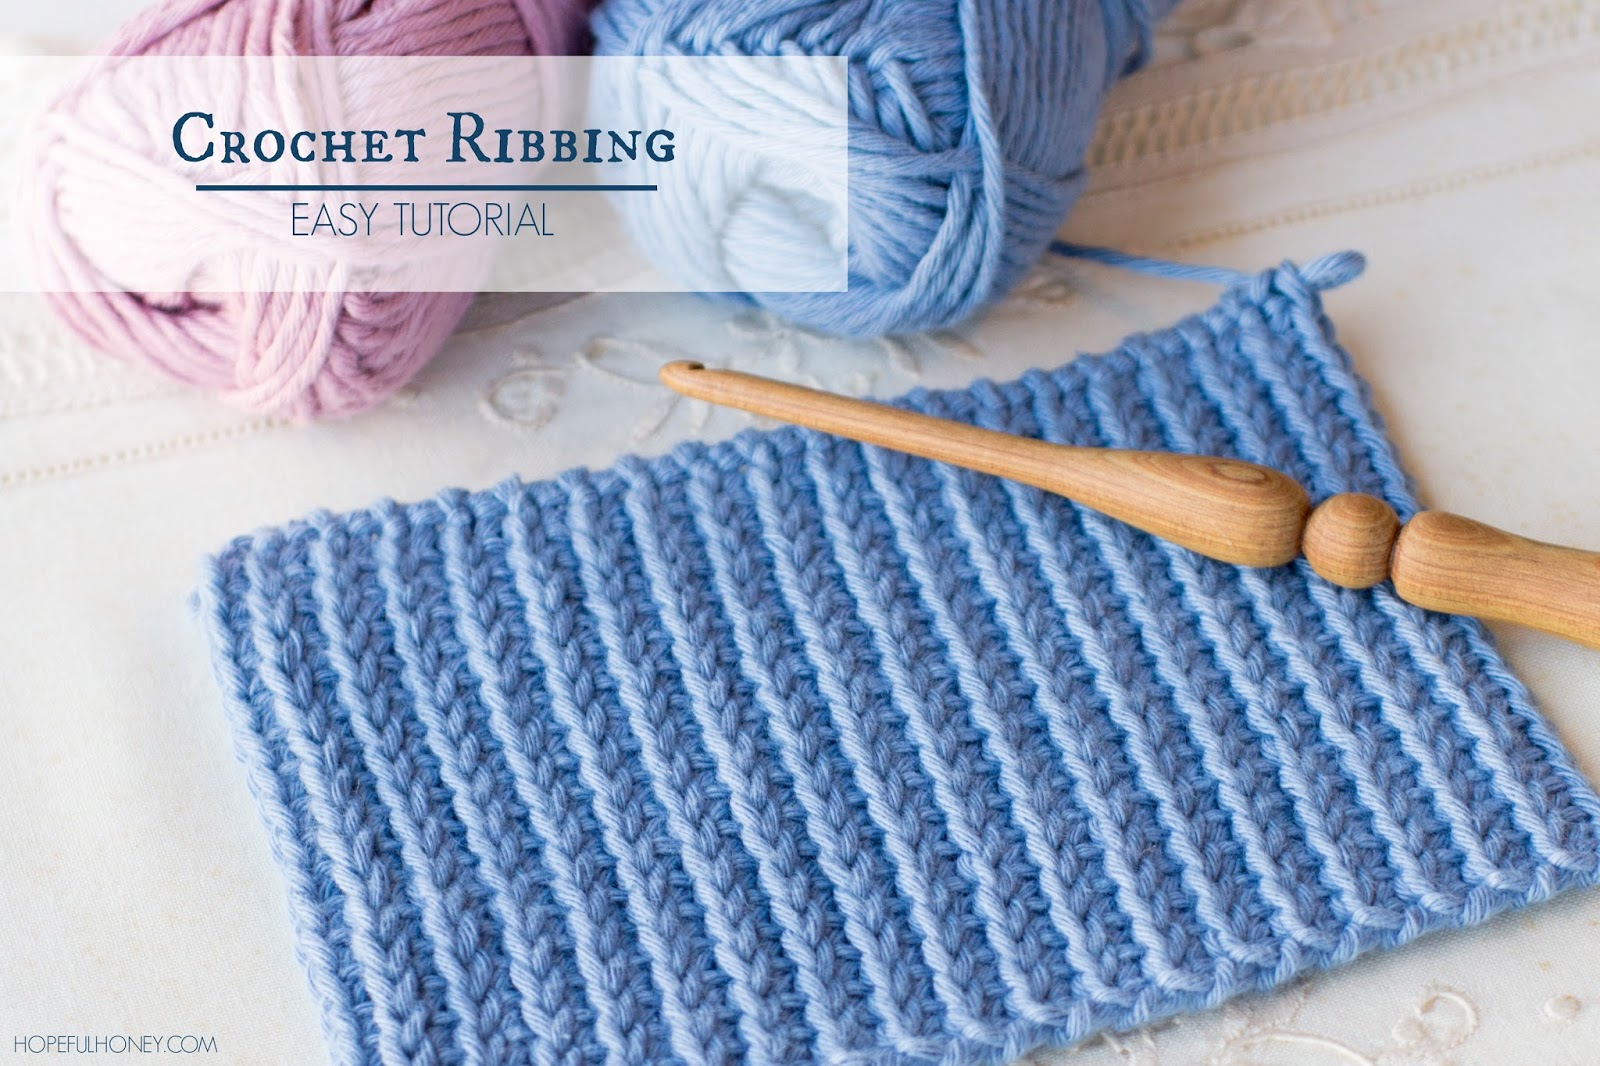 Crochet Ribbing : ... Craft, Crochet, Create: How To: Crochet A Ribbing - Easy Tutorial